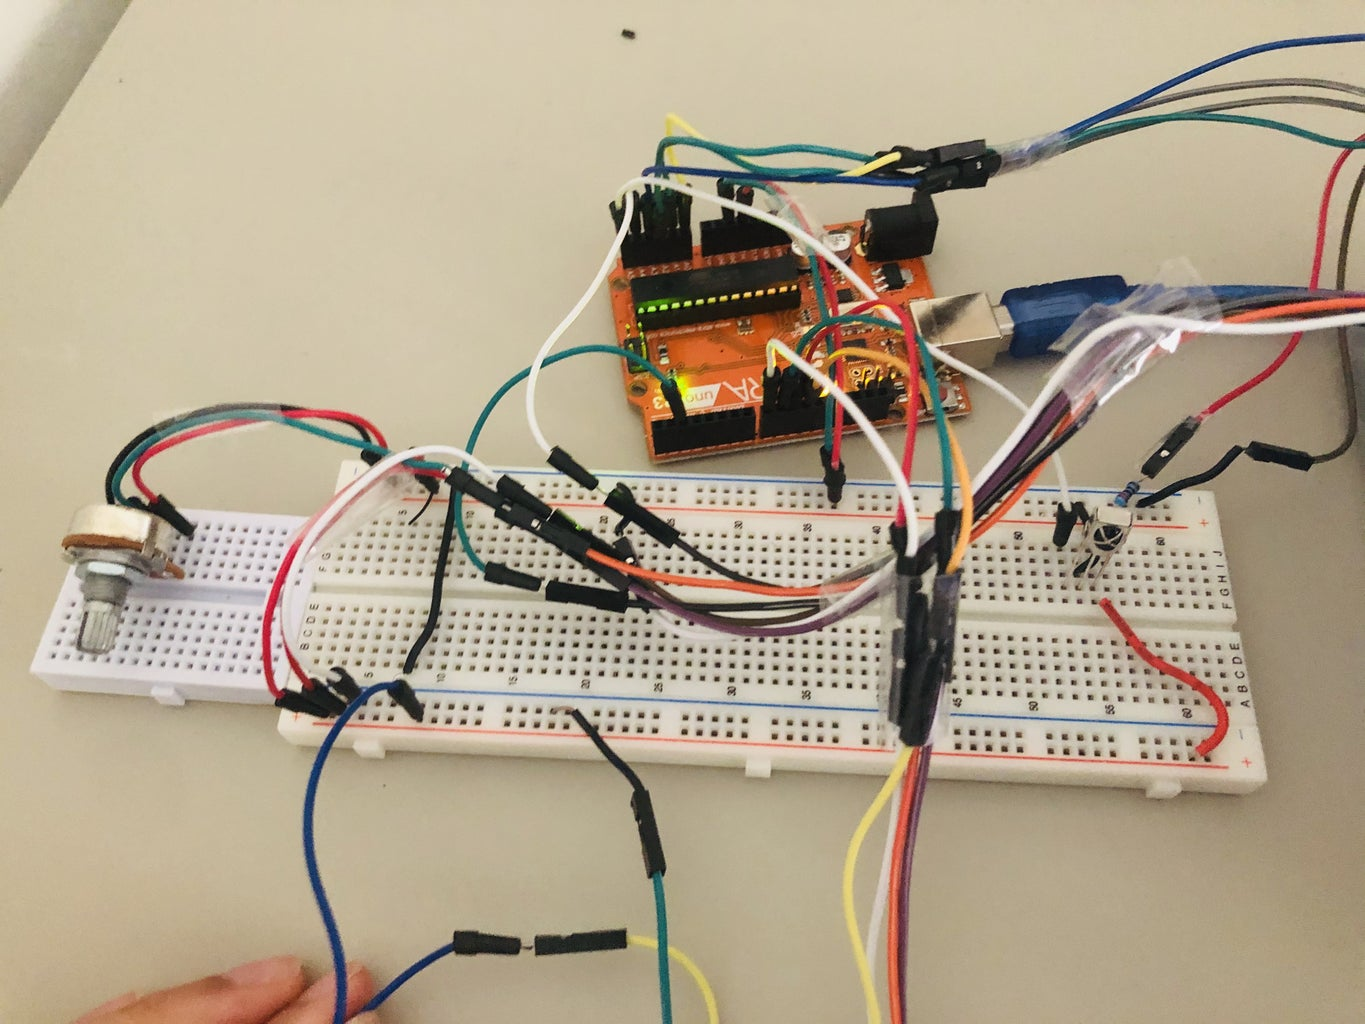 LCD Display Home Lock System